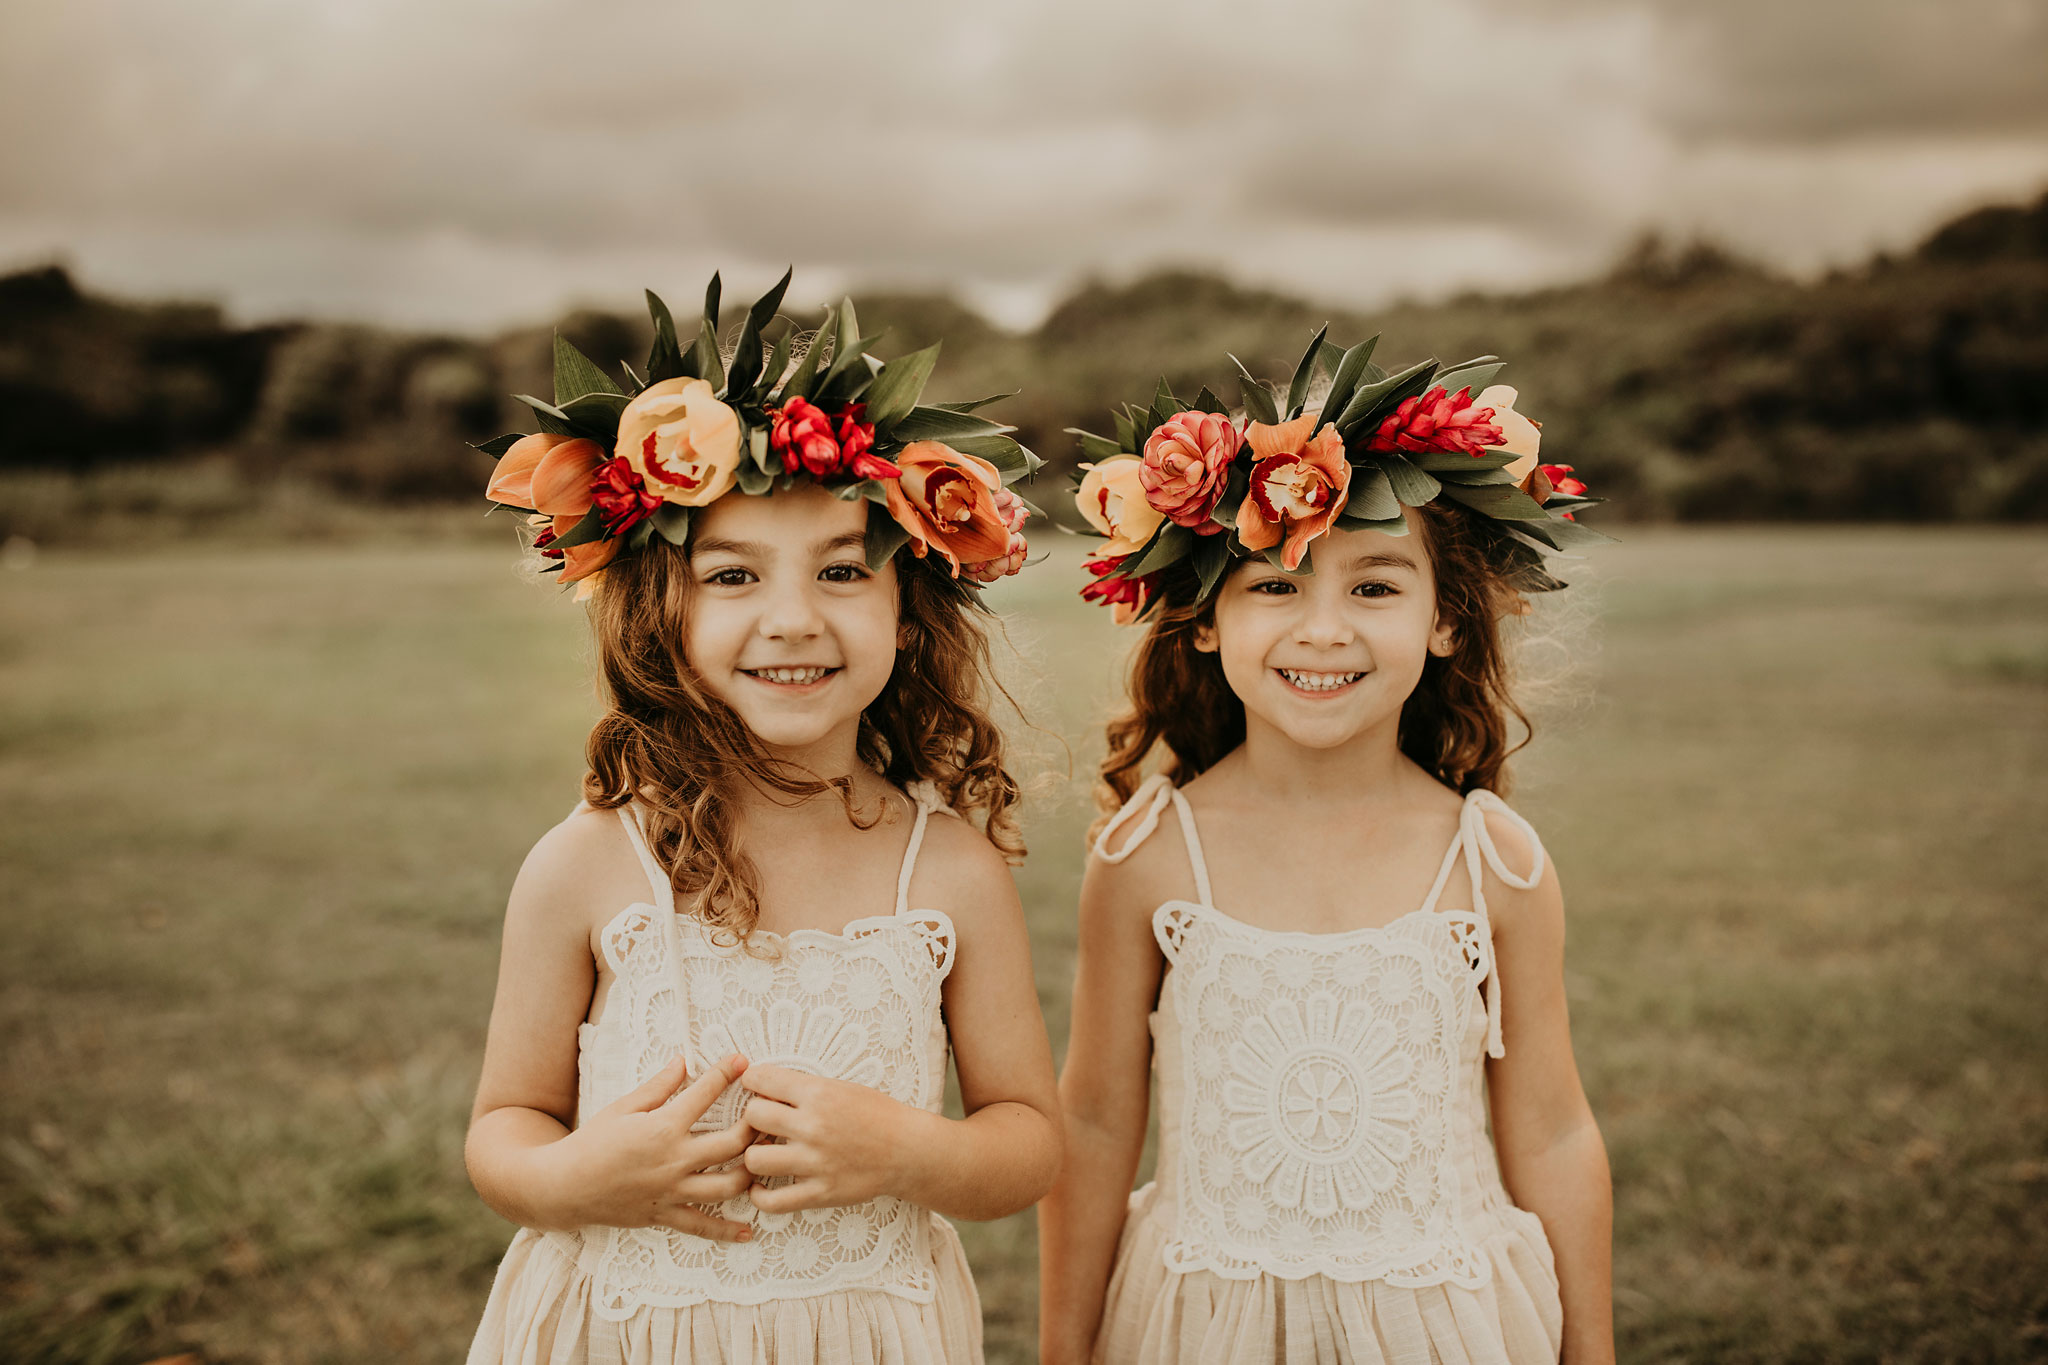 oahu-hawaoo-family-photos-photographer-photography-01.jpg